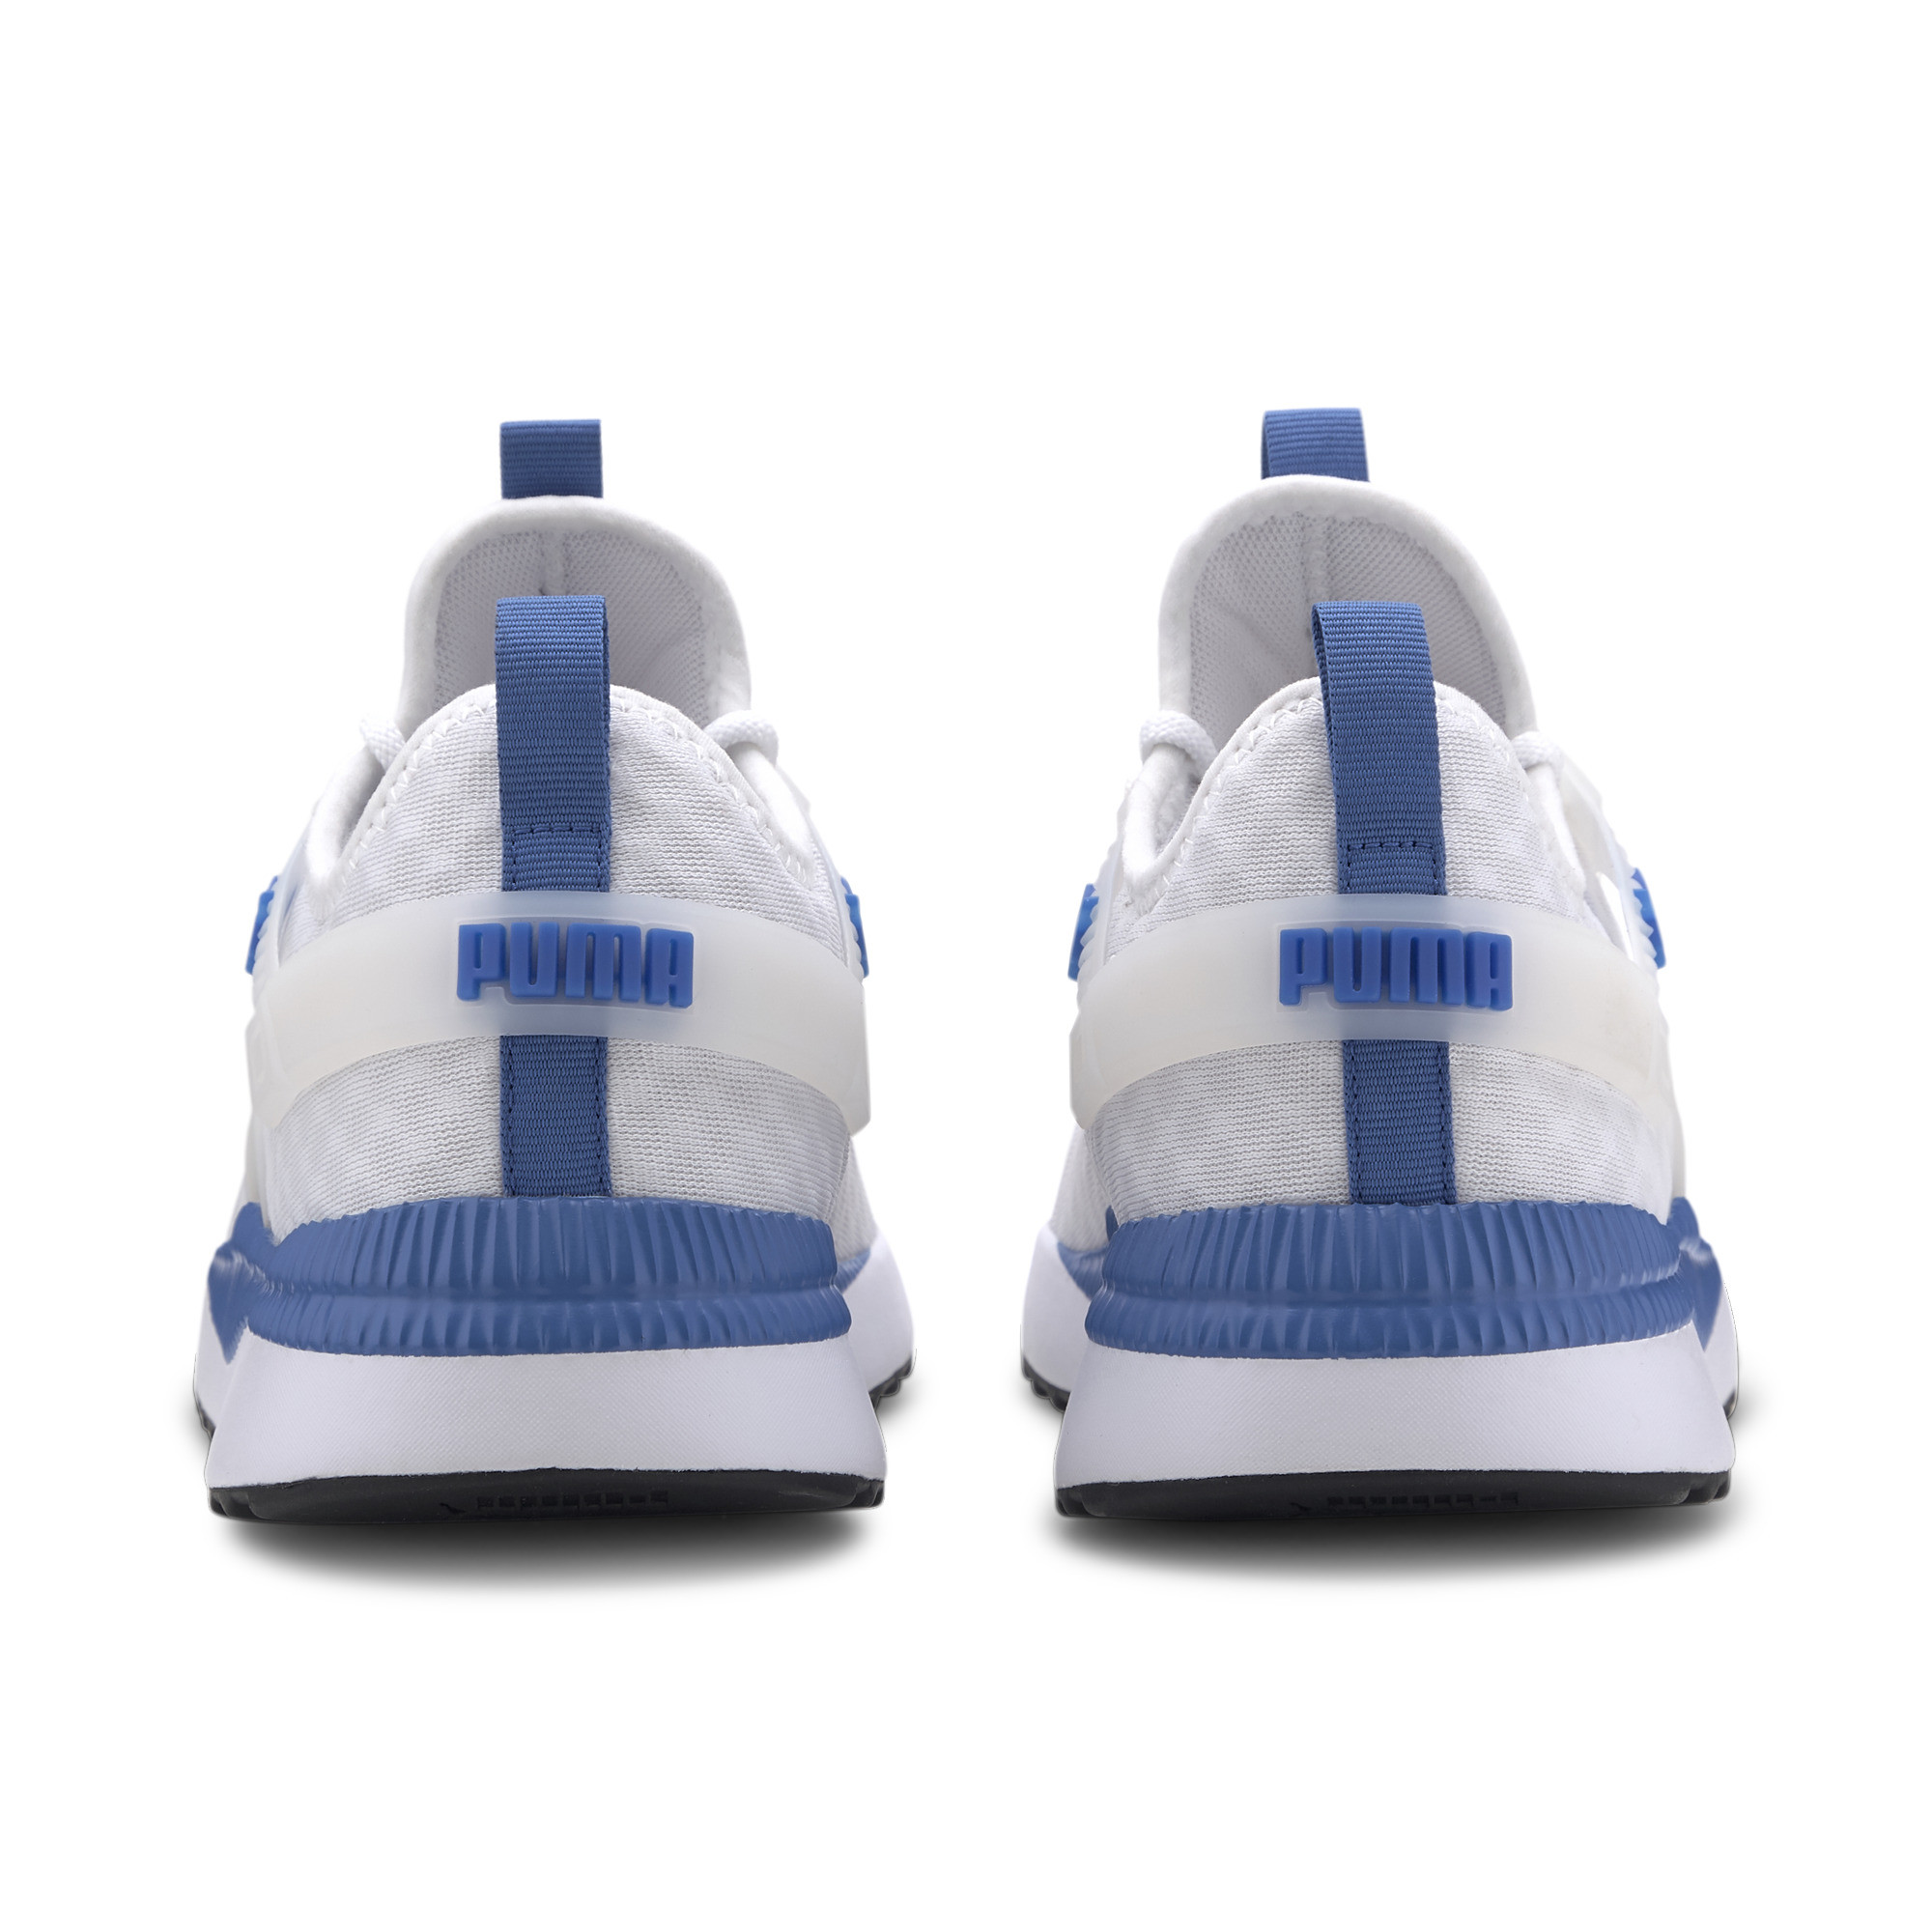 PUMA-Men-039-s-Pacer-Next-Excel-Core-Sneakers thumbnail 16